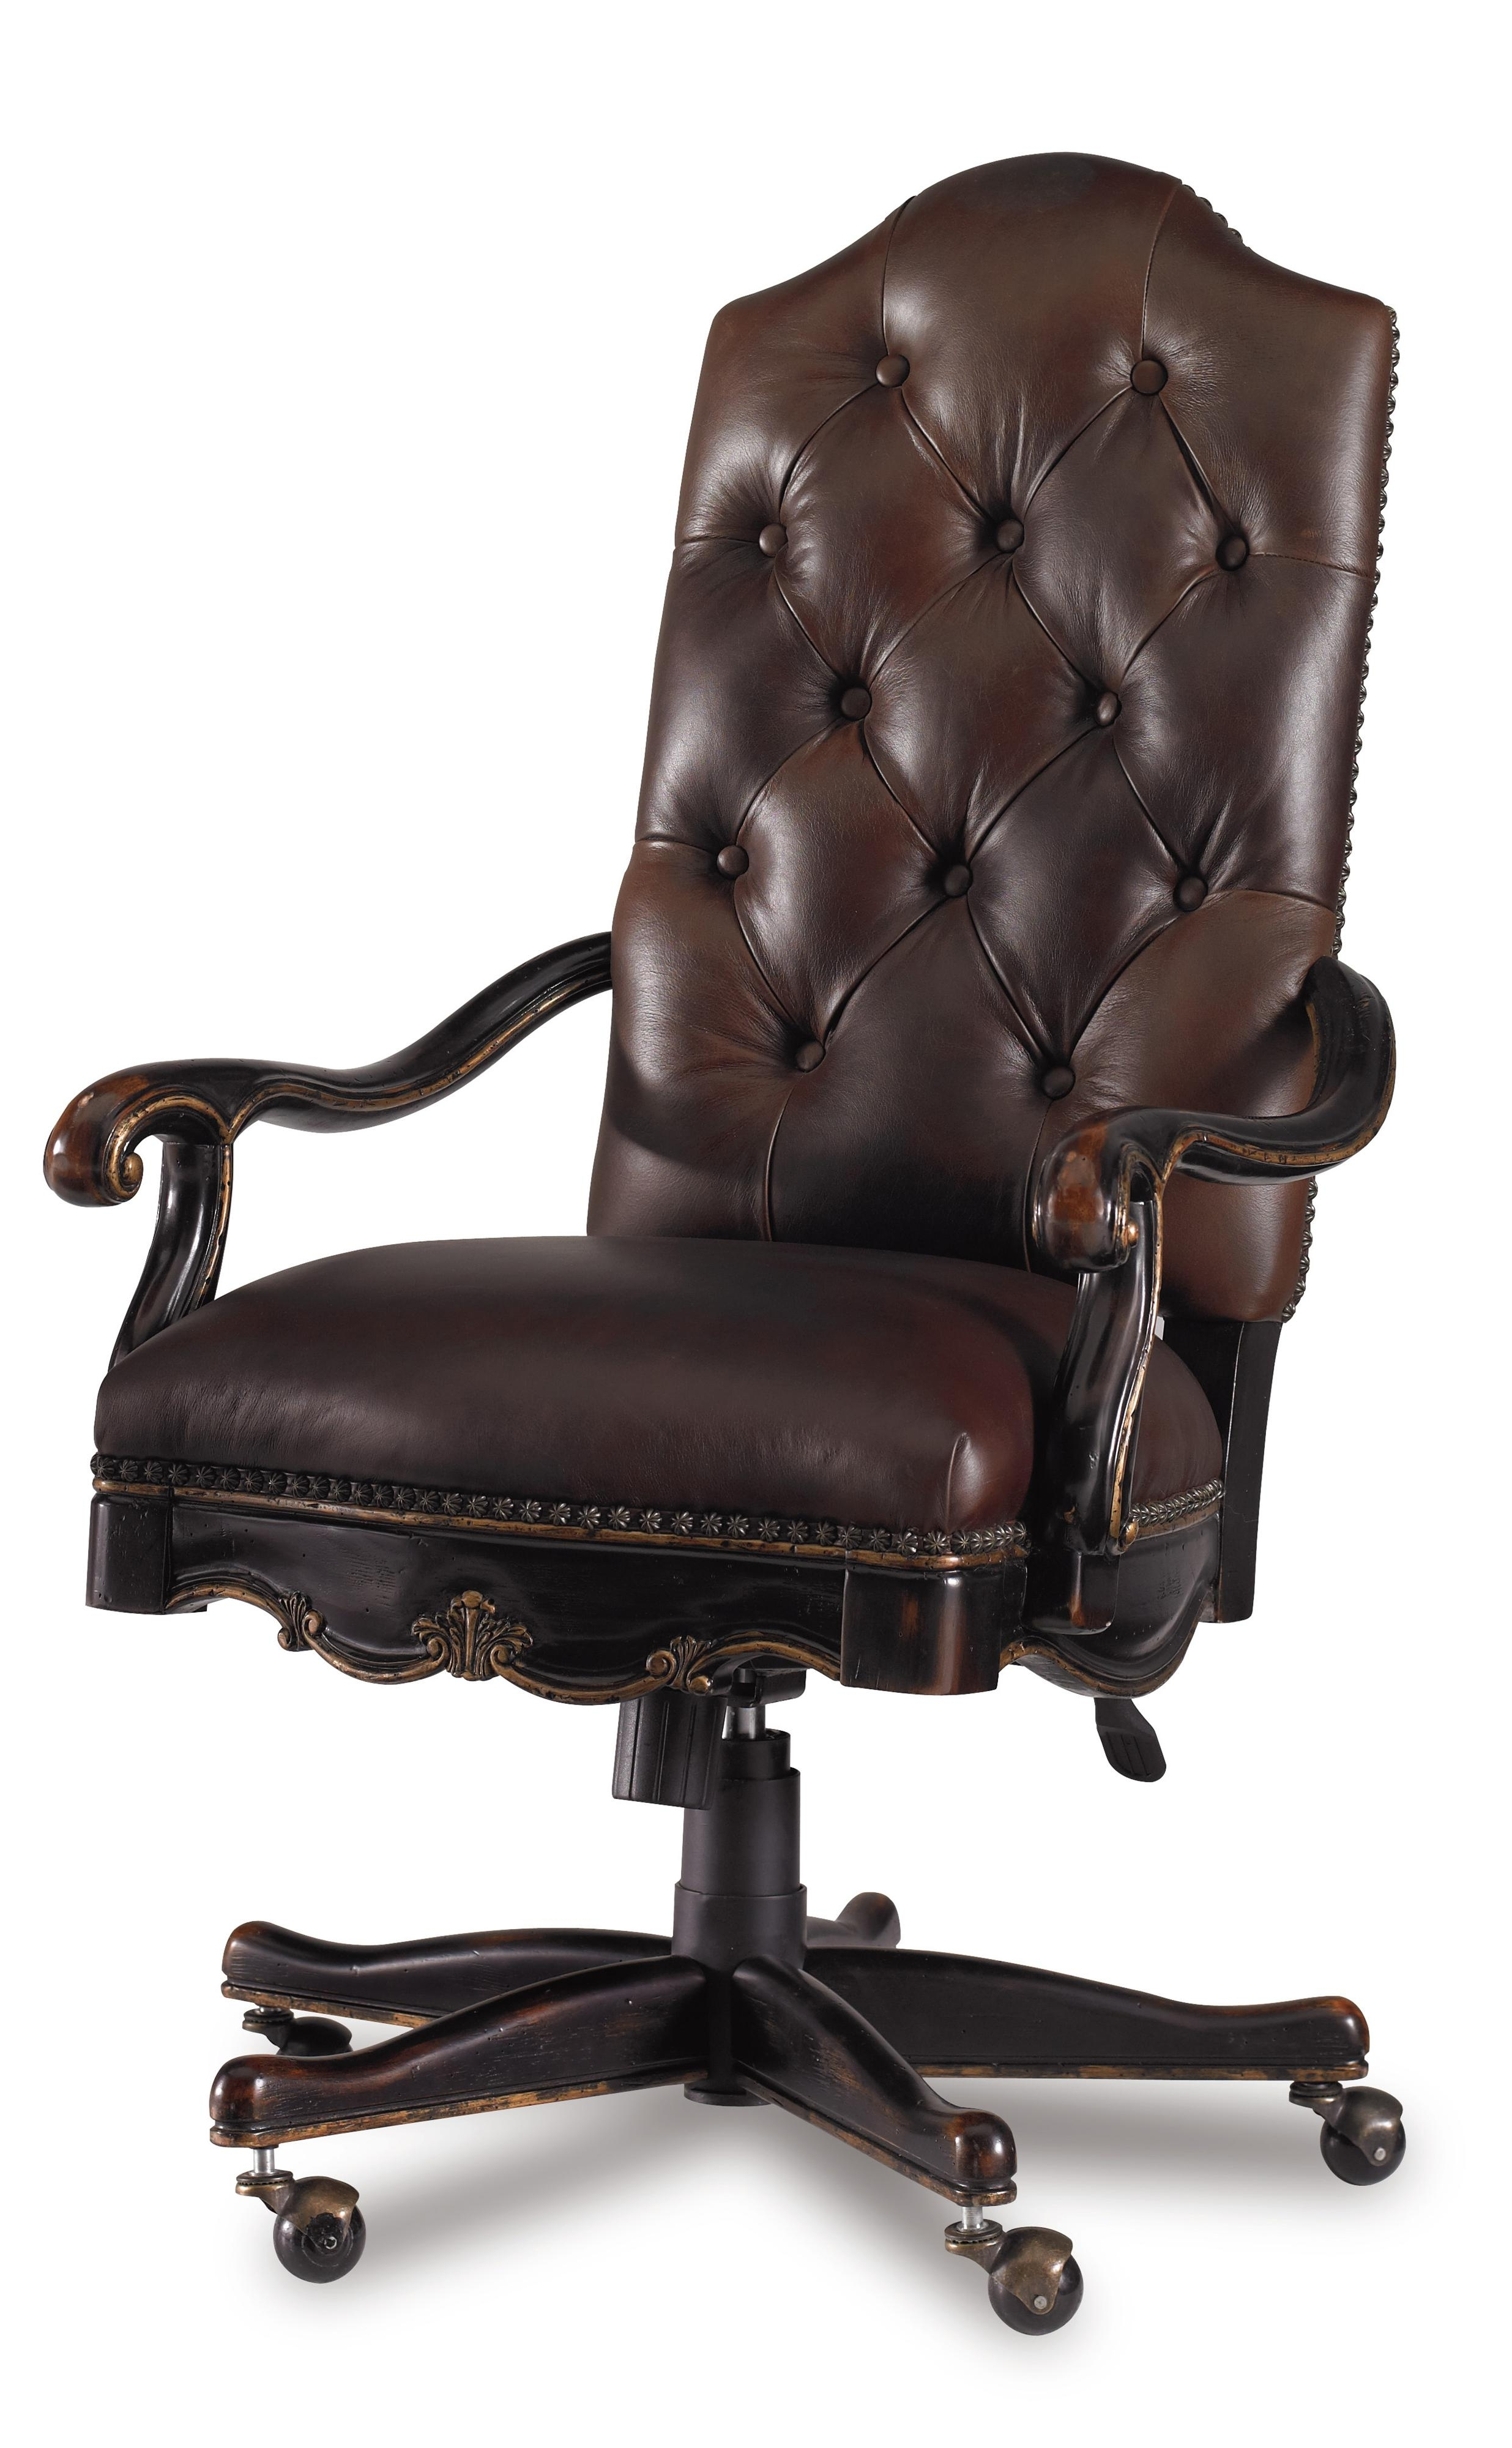 Hooker Furniture Grandover Tufted Leather Executive Office Chair Regarding Favorite Madison Executive Office Chairs (View 5 of 20)